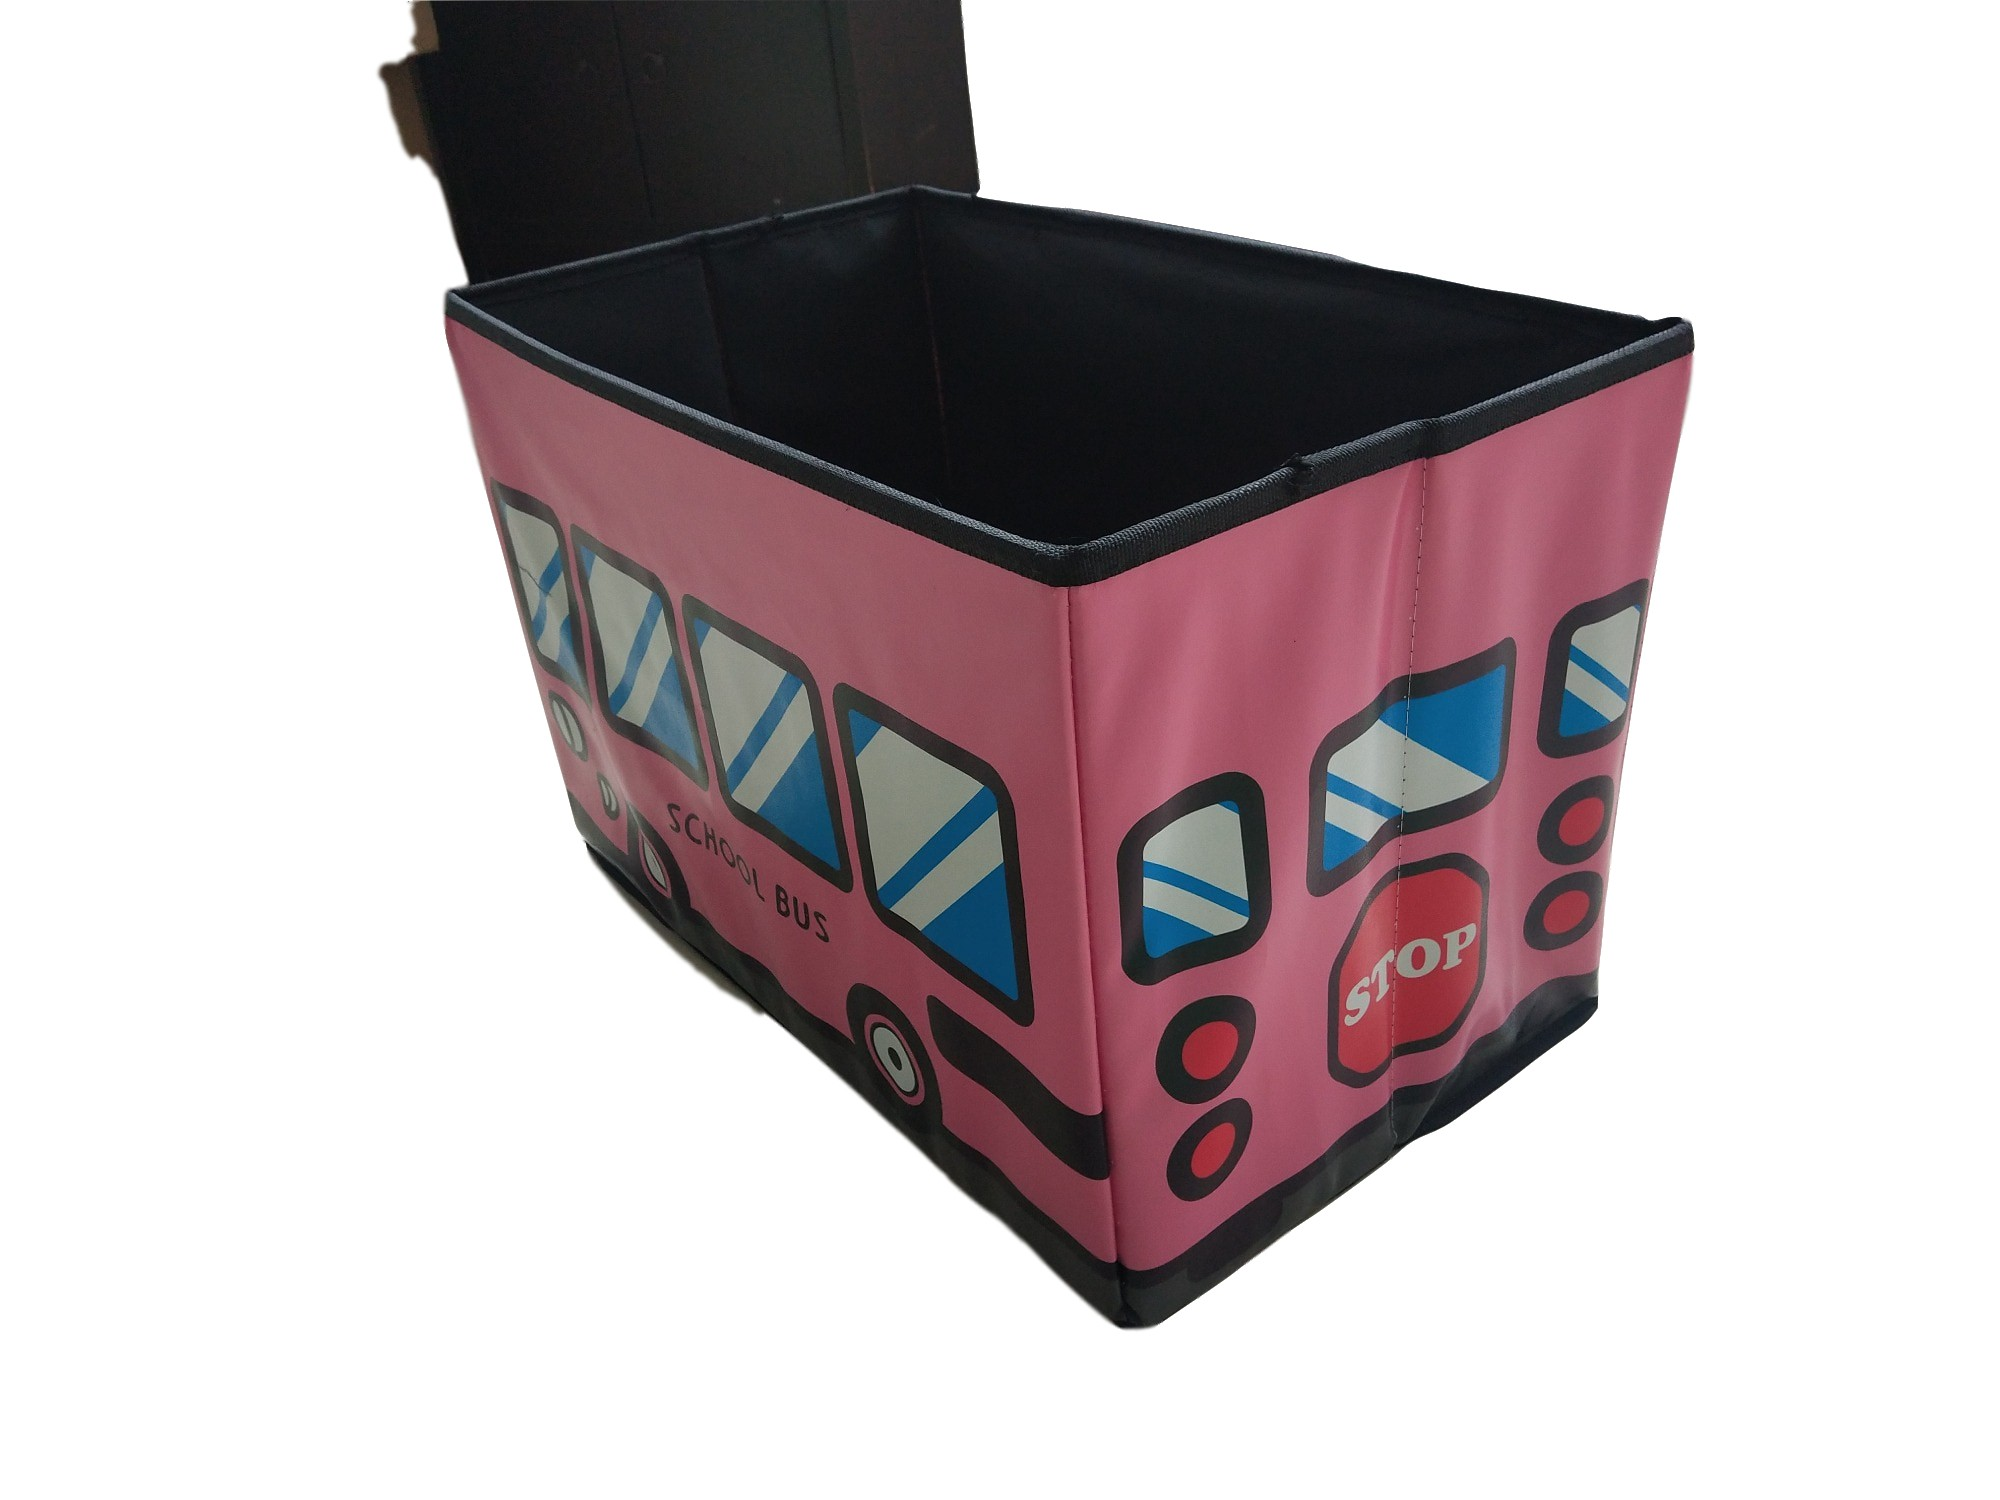 Wholesale Cute Kids Toy Organizer Baby Clothing Folding Storage Box Non Woven Fabric Storage Cube Boxes, Cute Kids Toy Organizer Baby Clothing Folding Storage Box Non Woven Fabric Storage Cube Boxes Manufacturers, Cute Kids Toy Organizer Baby Clothing Folding Storage Box Non Woven Fabric Storage Cube Boxes Producers